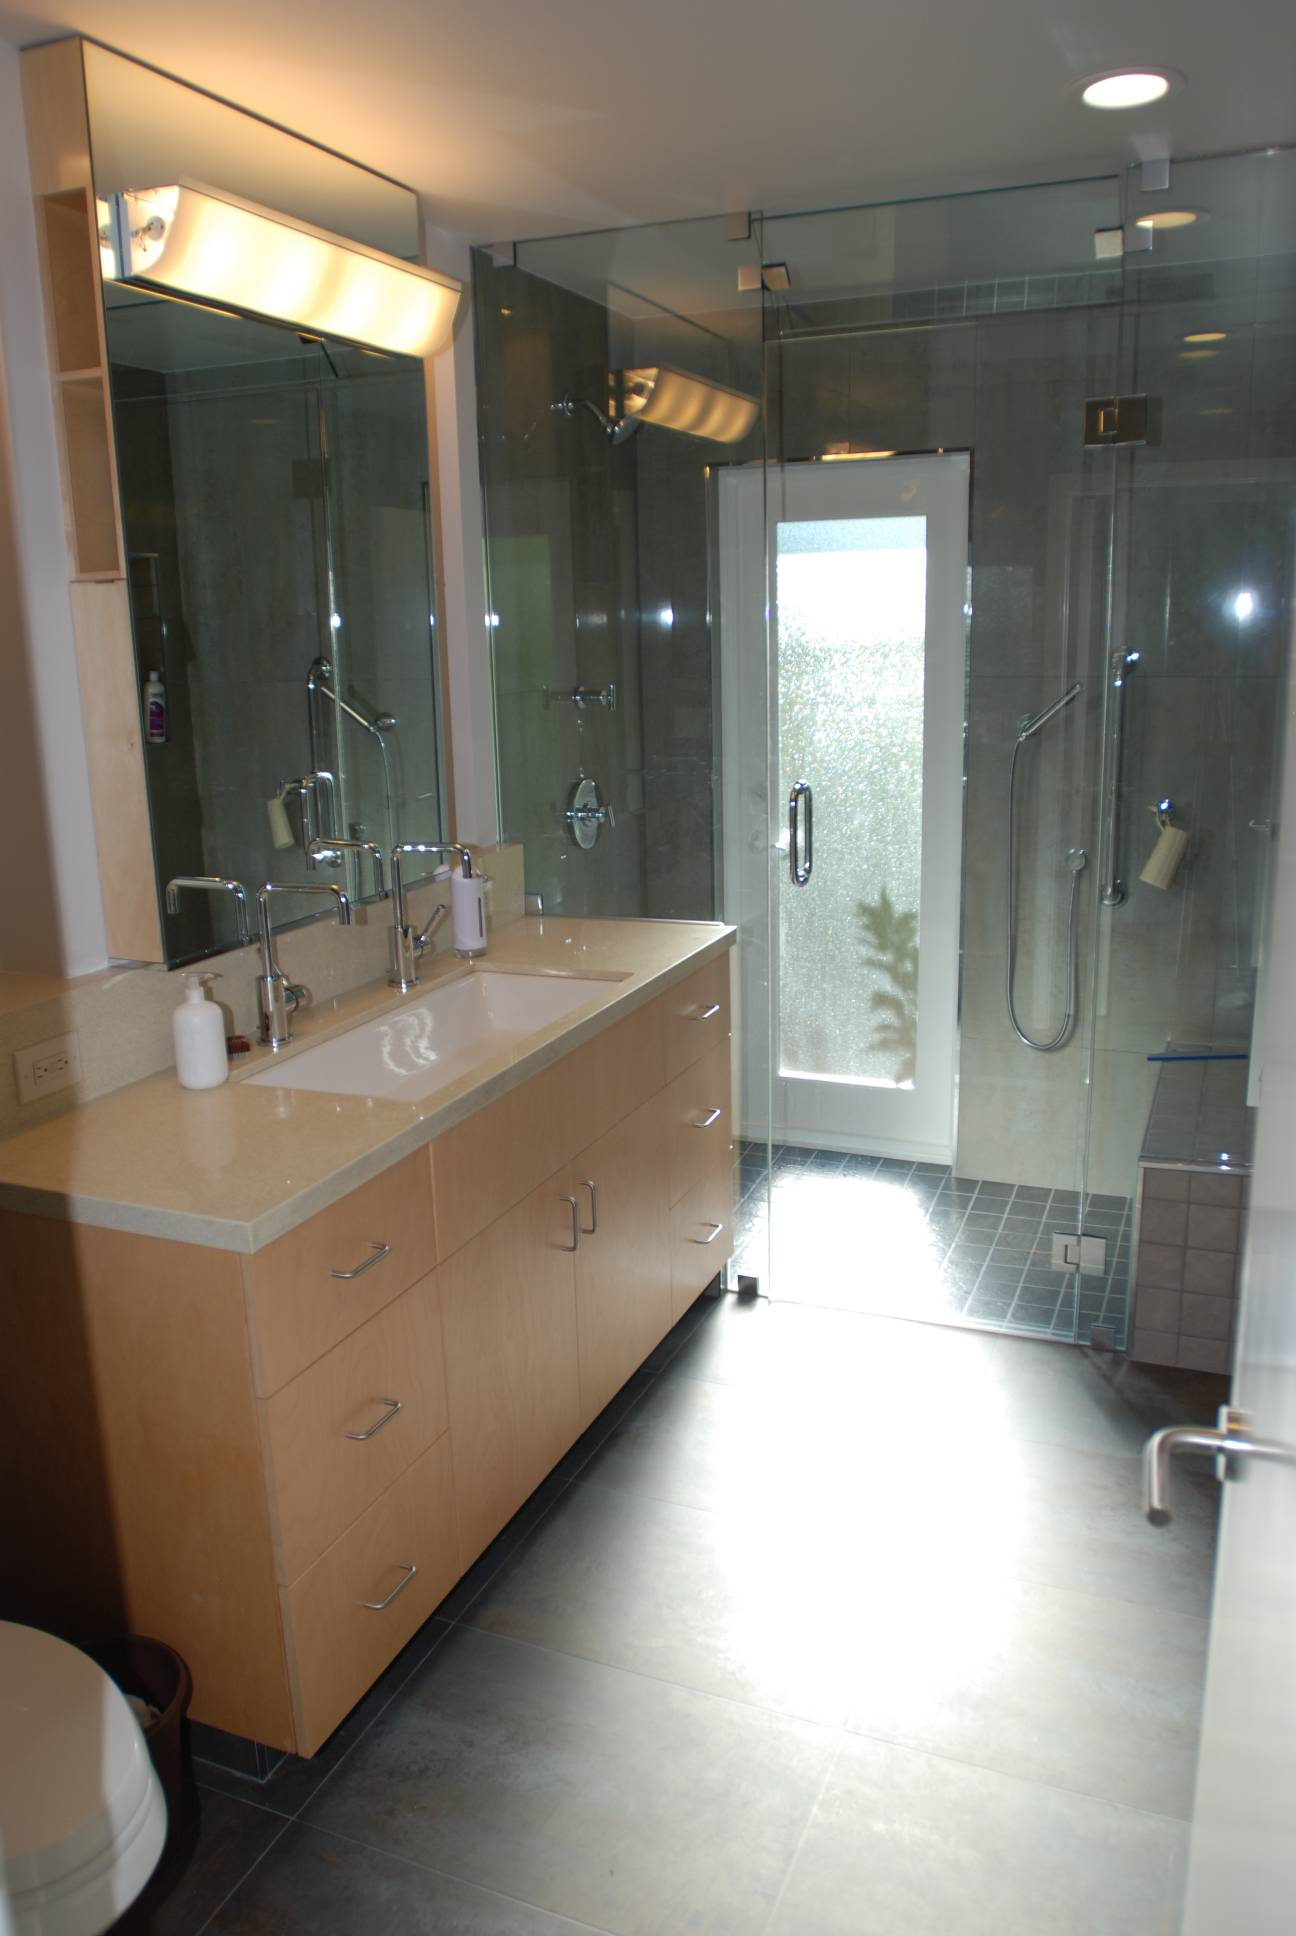 Modern bathroom, Architect design, interior design work, Menlo Park